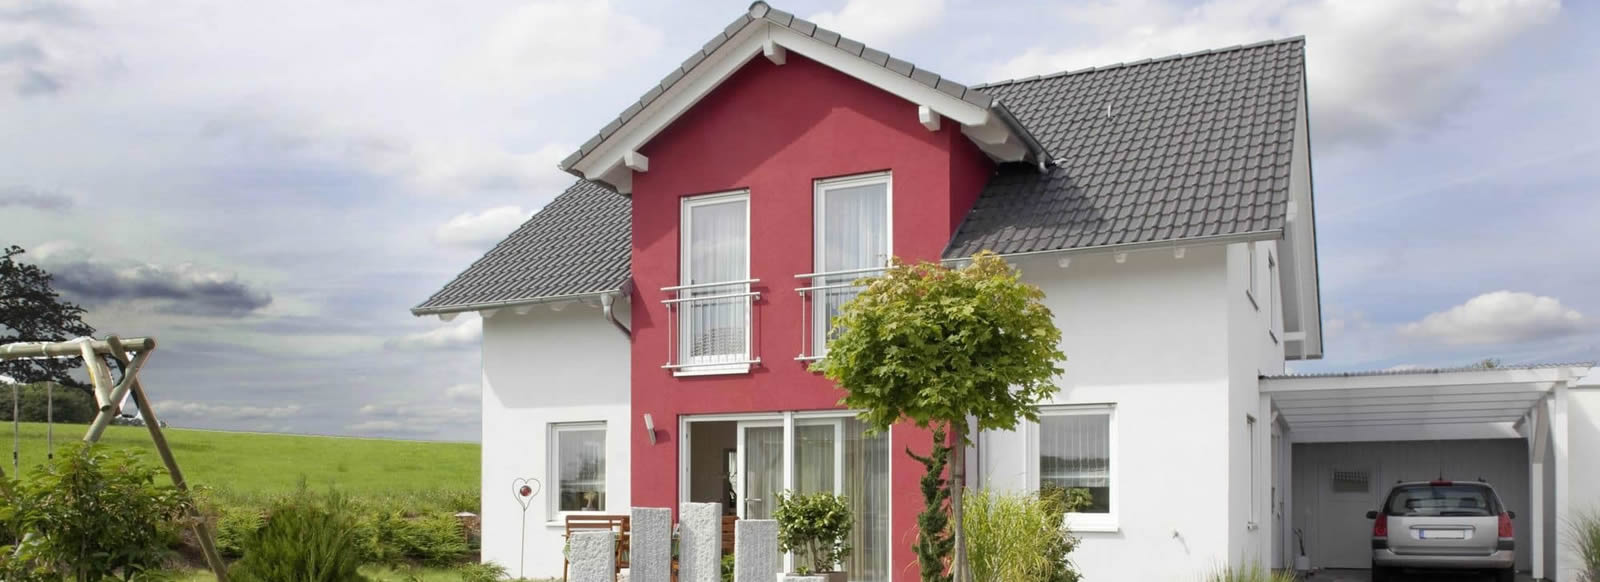 Mortgage Loan and Home Loan Germany